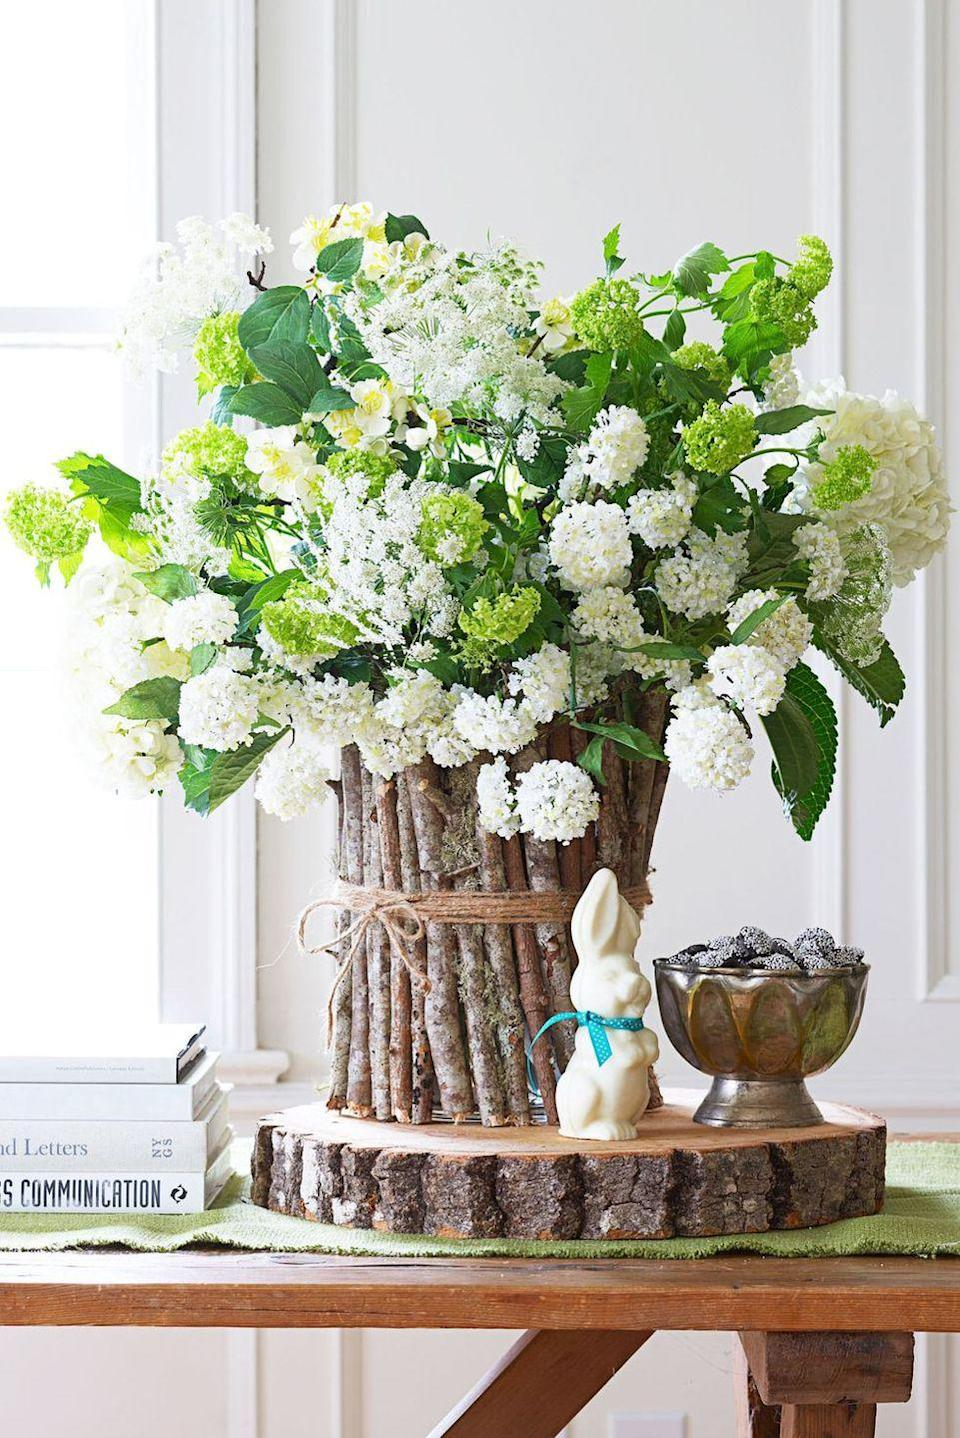 <p>A woodsy vase echoes these flowers' country-garden vibe. For the container, cut 30 to 40 twigs to the height of a glass vase, then glue them to its surface, a few inches at a time. Finish with jute twine tied in a bow. </p>